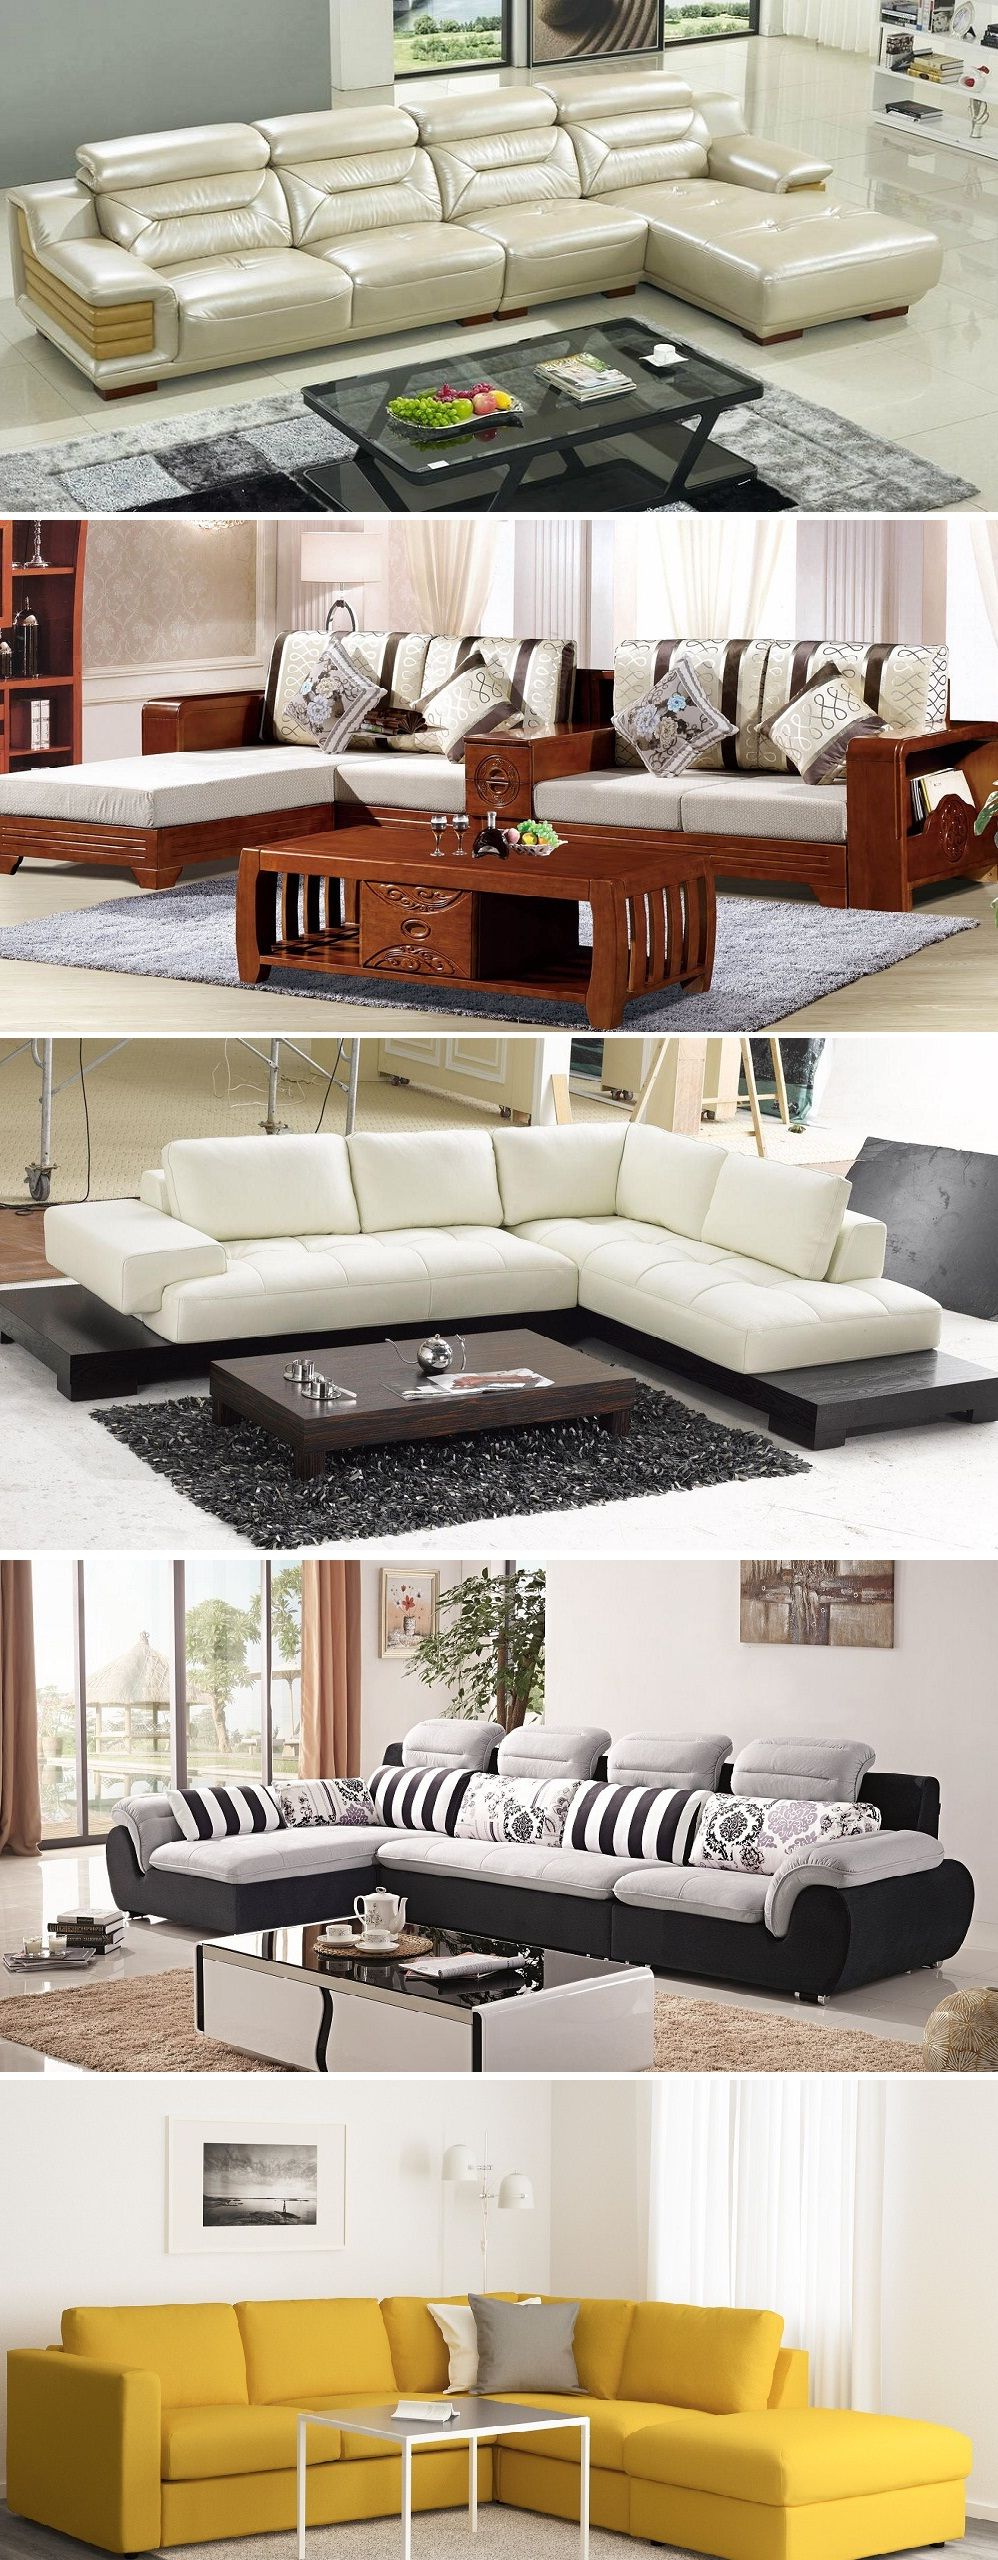 L Shaped Sofa Set Designs Couches and Furniture